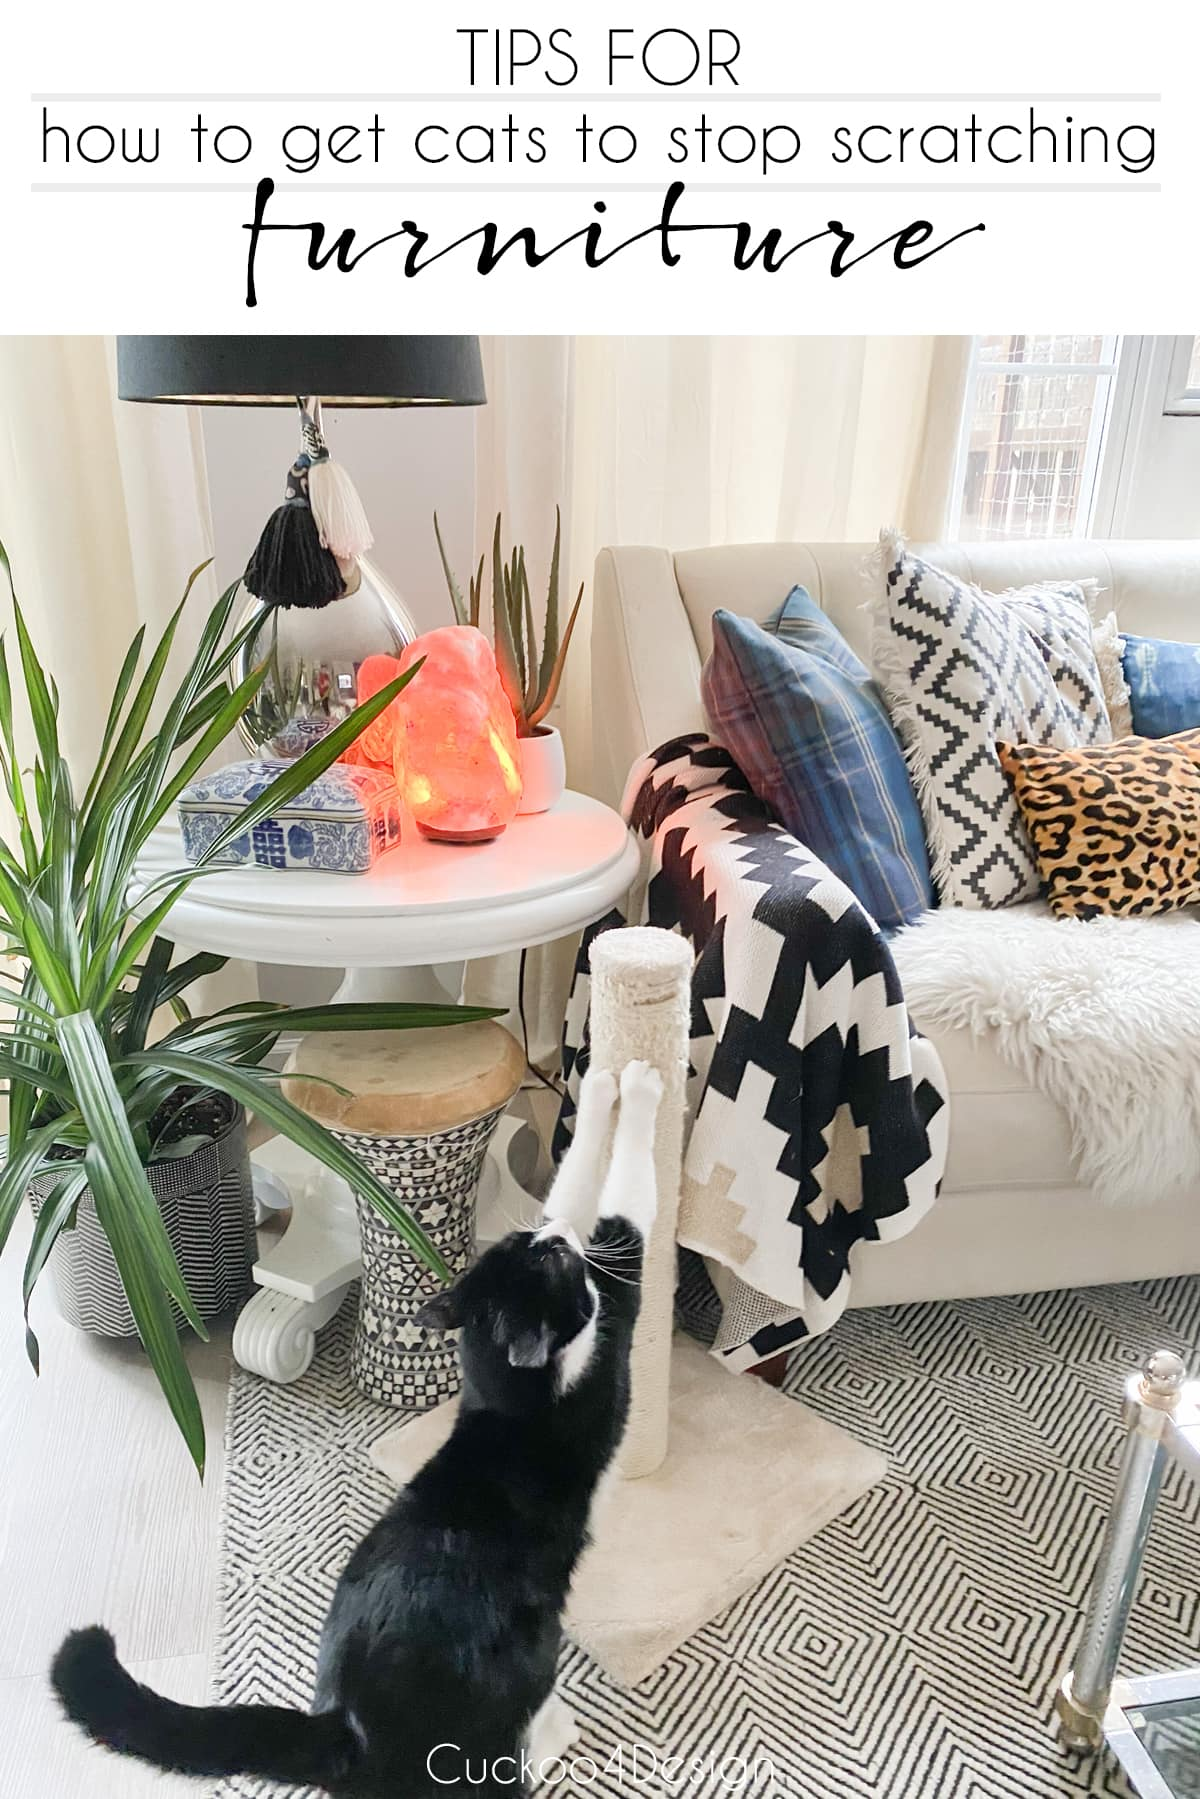 tips for how to get cats to stop scratching furniture